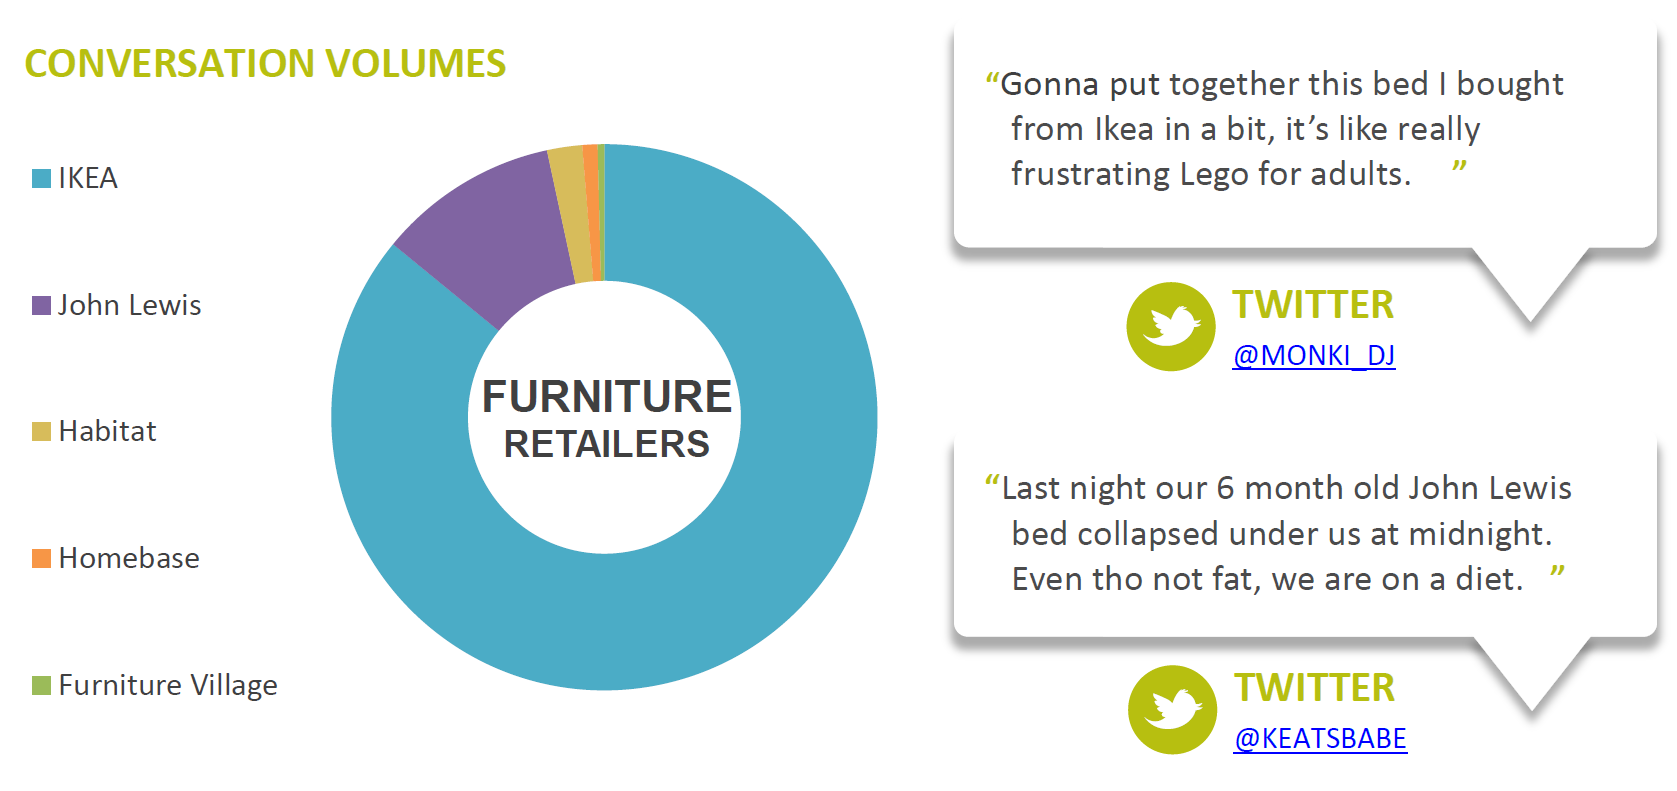 Social Media and Furniture Retailers With Added Meatballs